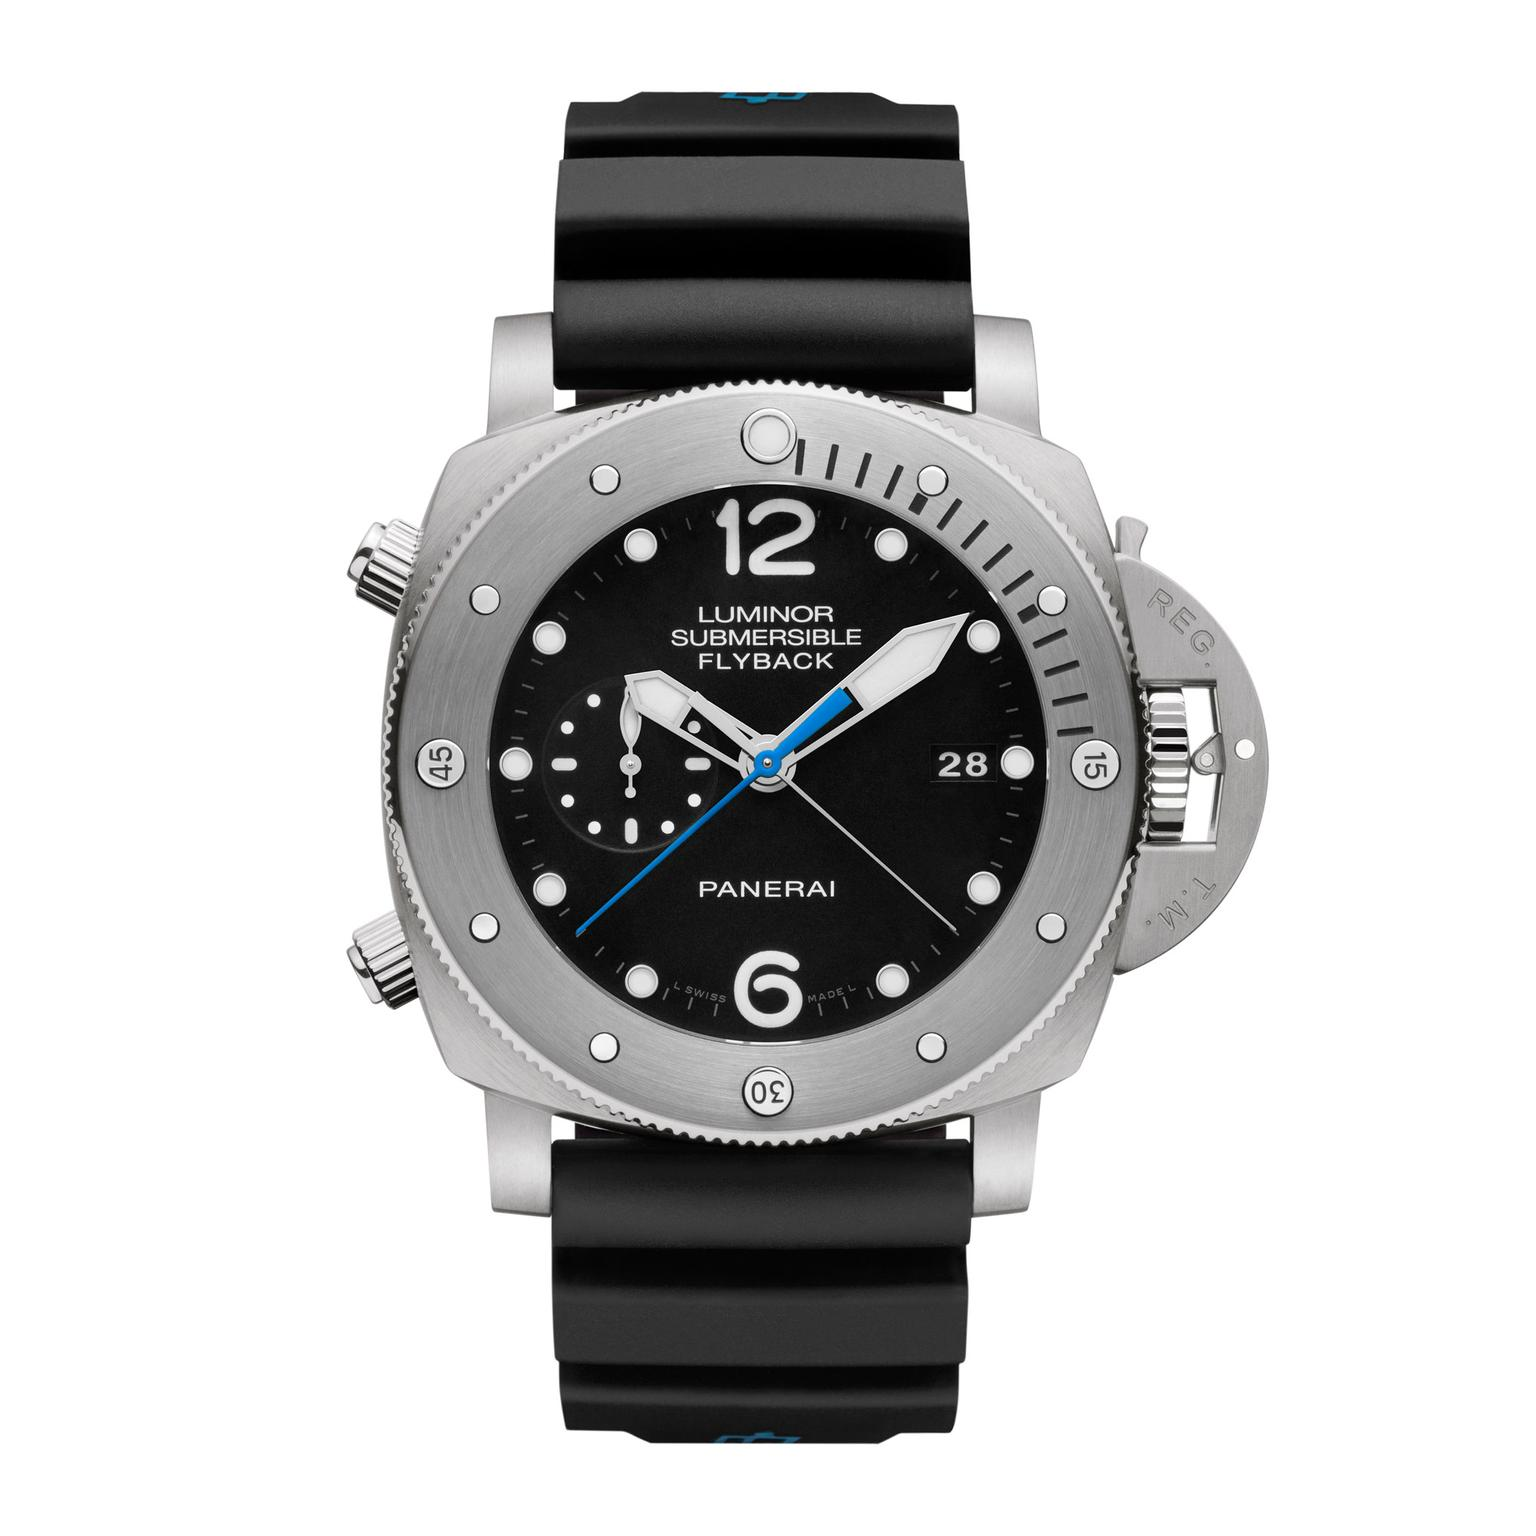 Panerai Luminor Submersible Flyback PAM614_zoom